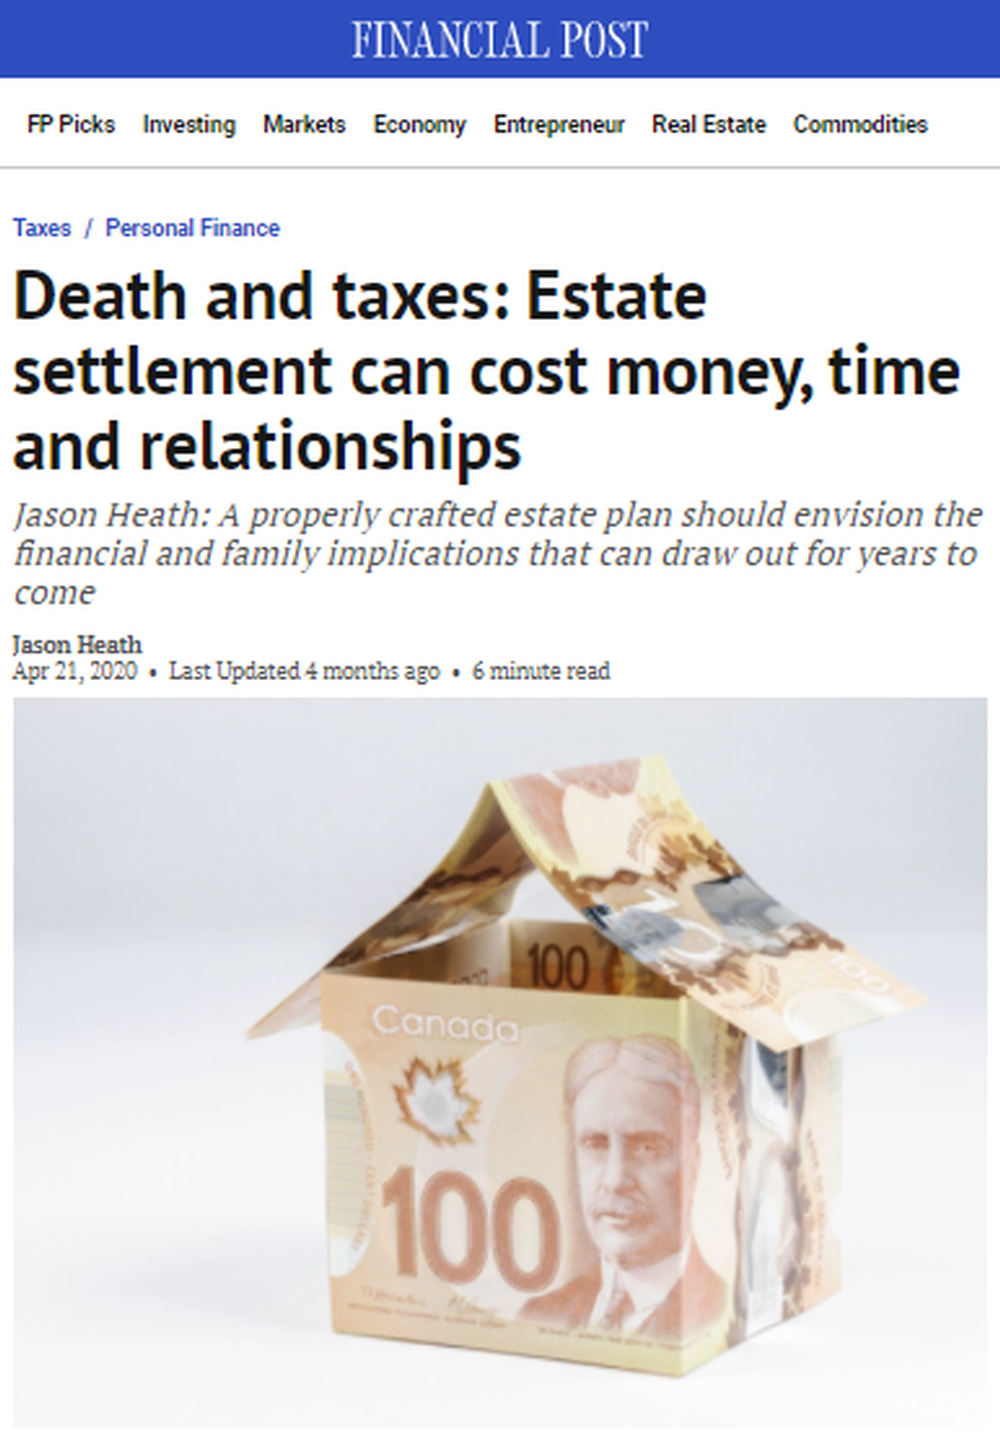 Death-and-taxes-Estate-settlement-can-cost-money-time-and-relationships-Financial-Post.png